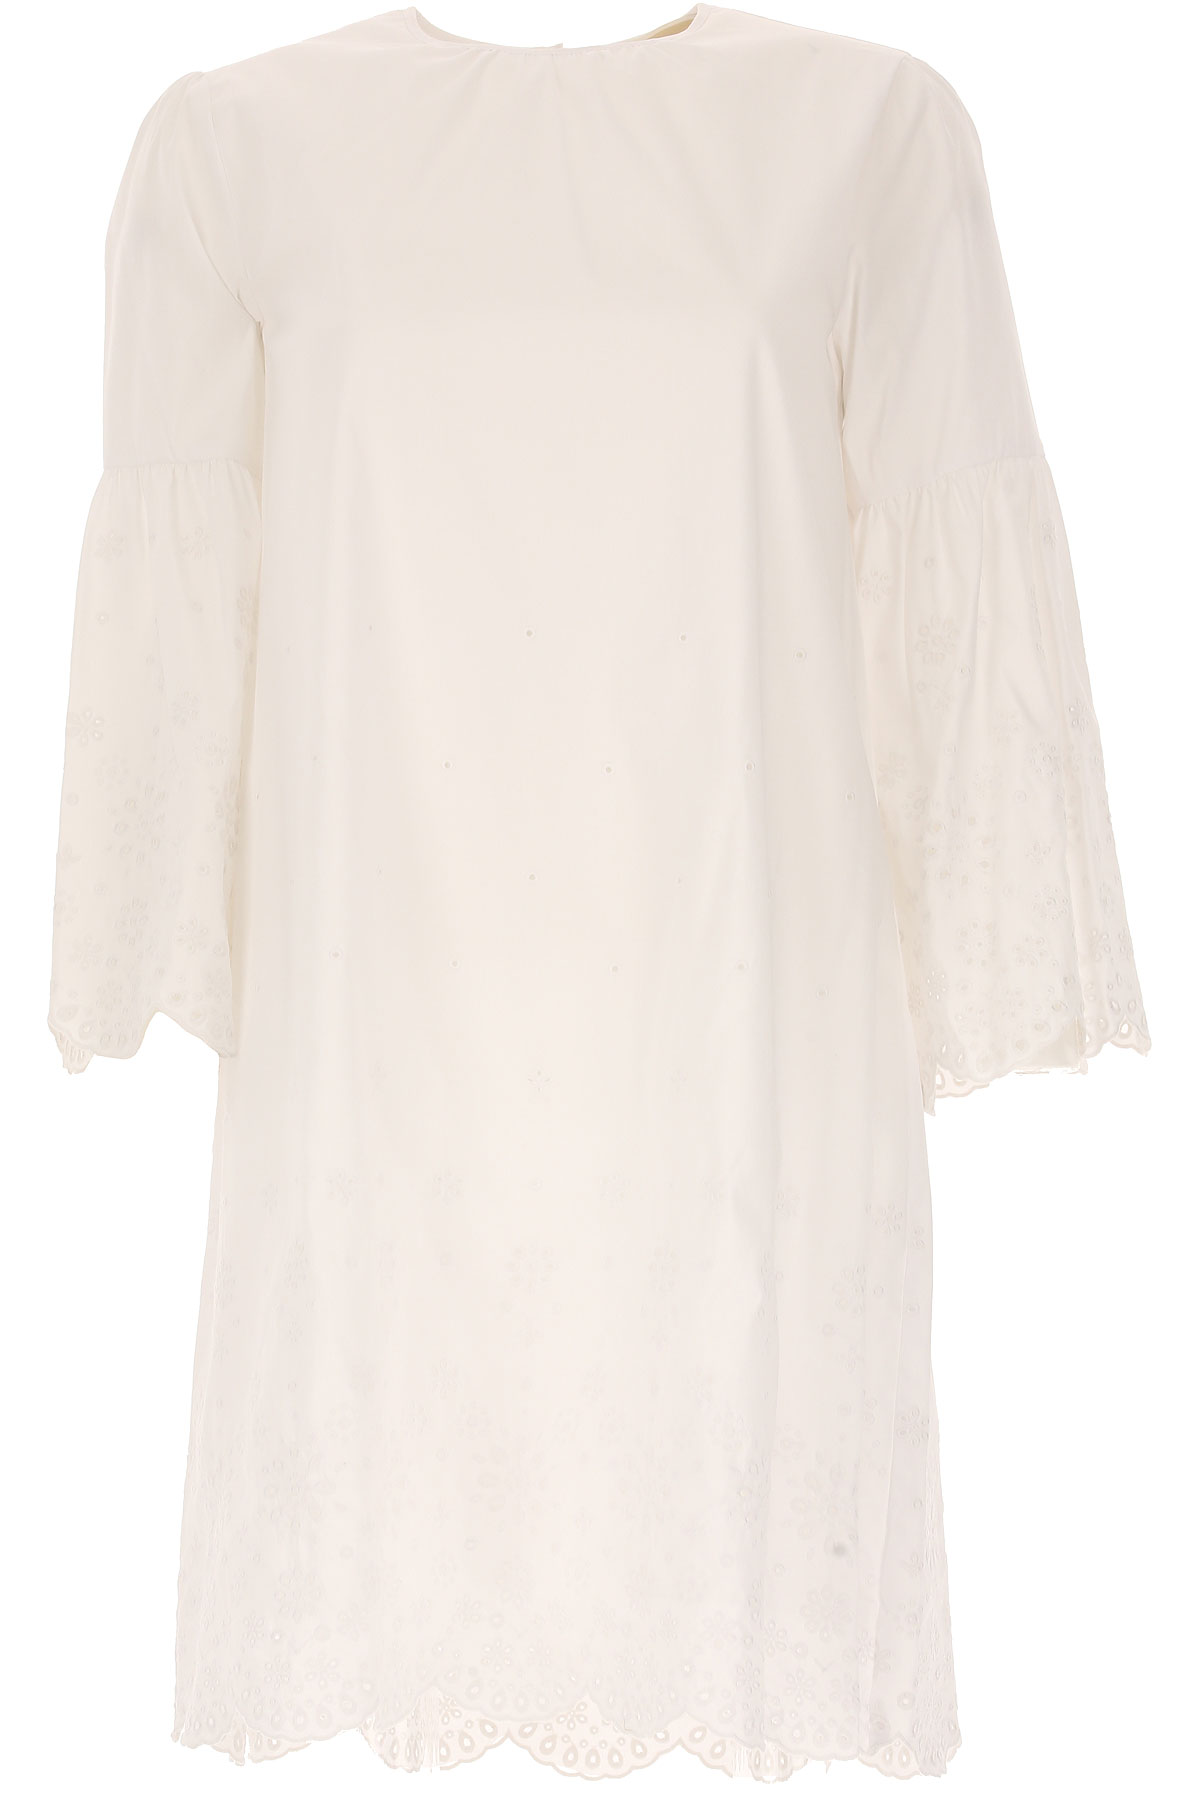 Michael Kors Dress for Women, Evening Cocktail Party On Sale in Outlet, White, Cotton, 2019, 10 6